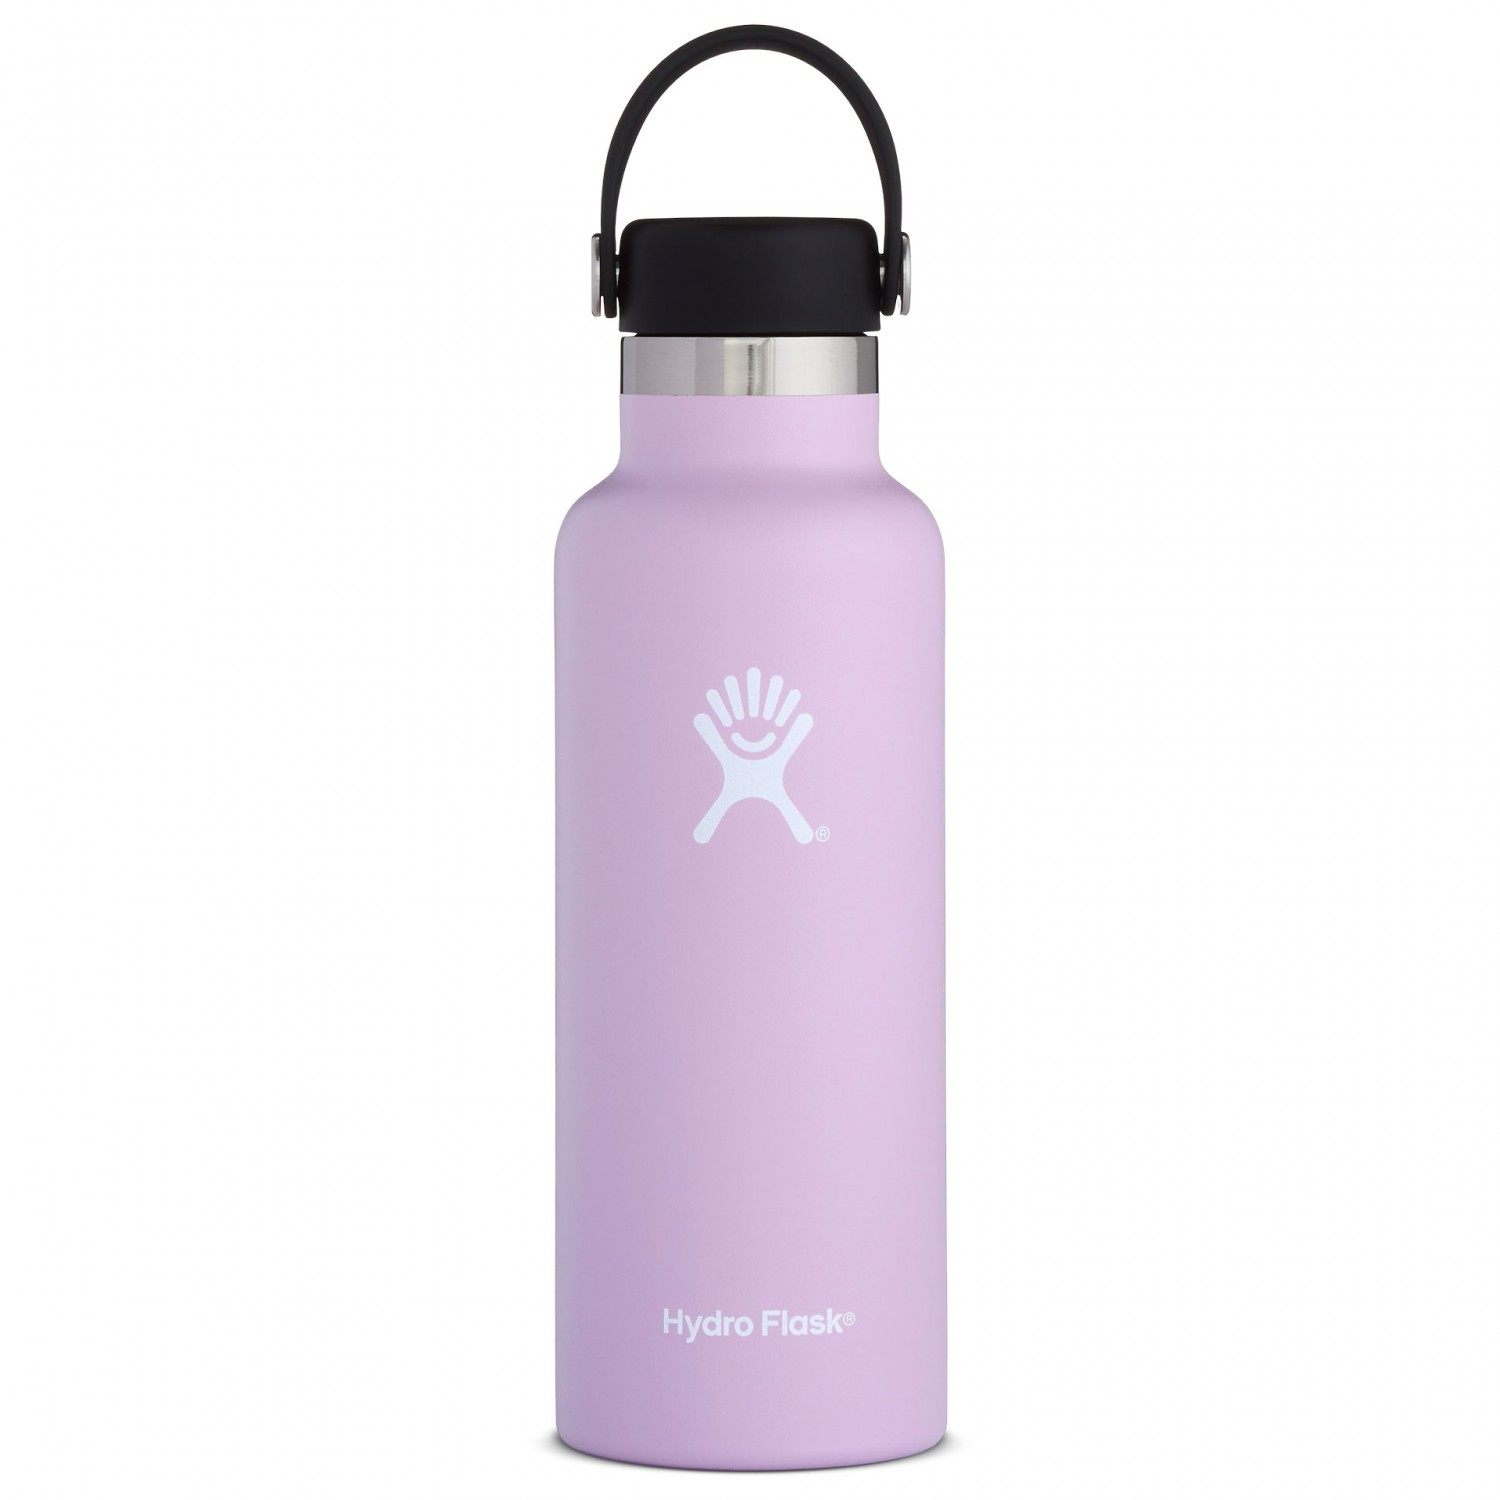 Hydro Flask Standard Mouth with Standard Flex Cap  Buy